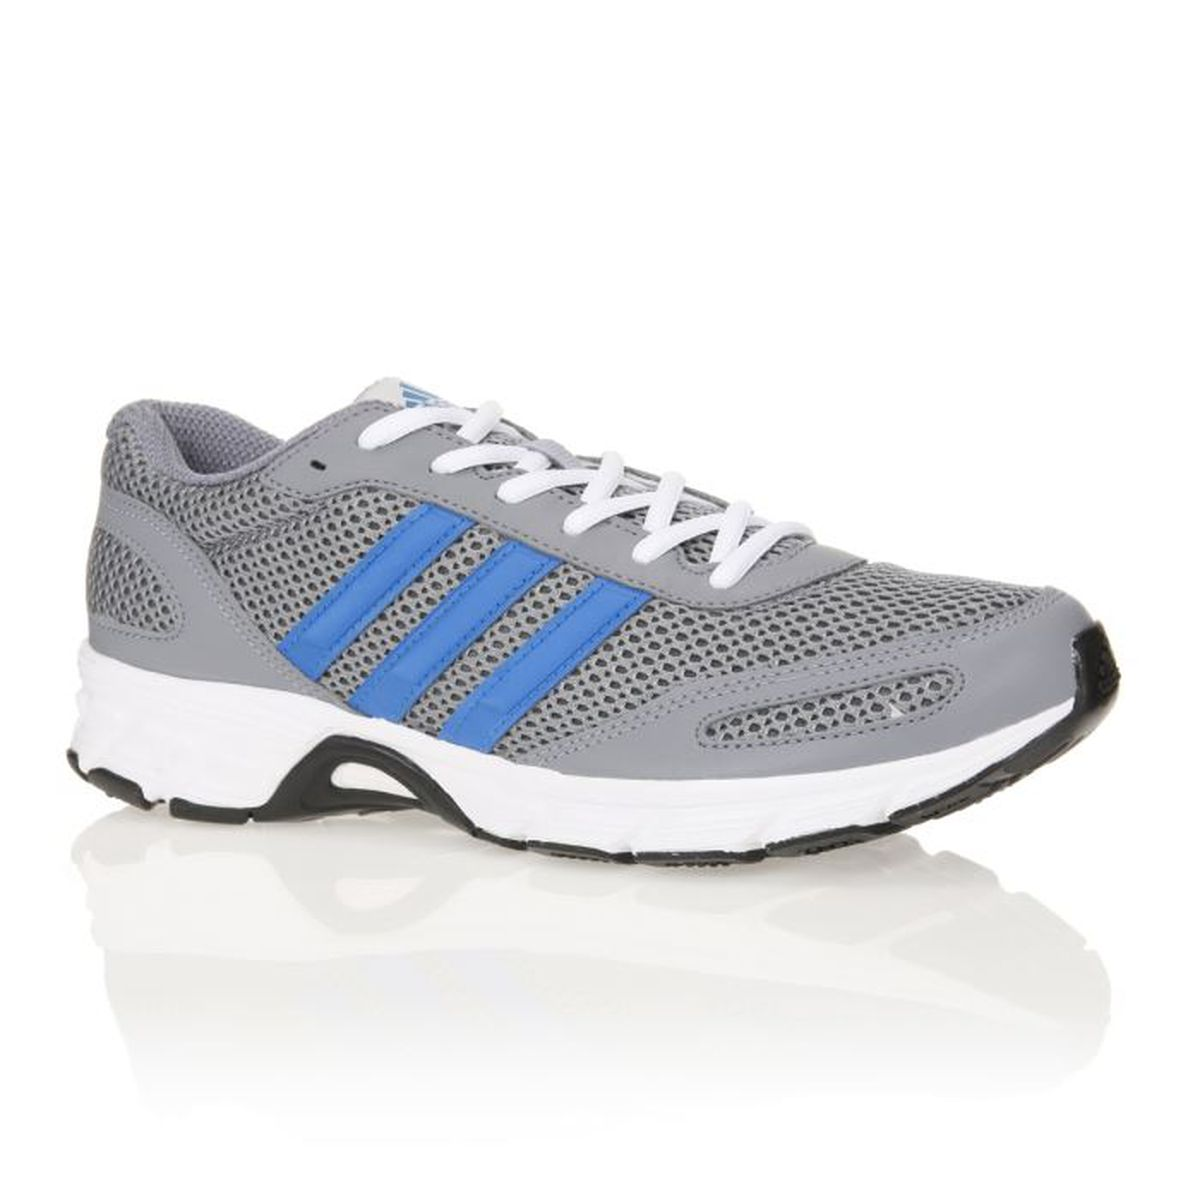 adidas chaussures running blueject homme prix pas cher. Black Bedroom Furniture Sets. Home Design Ideas